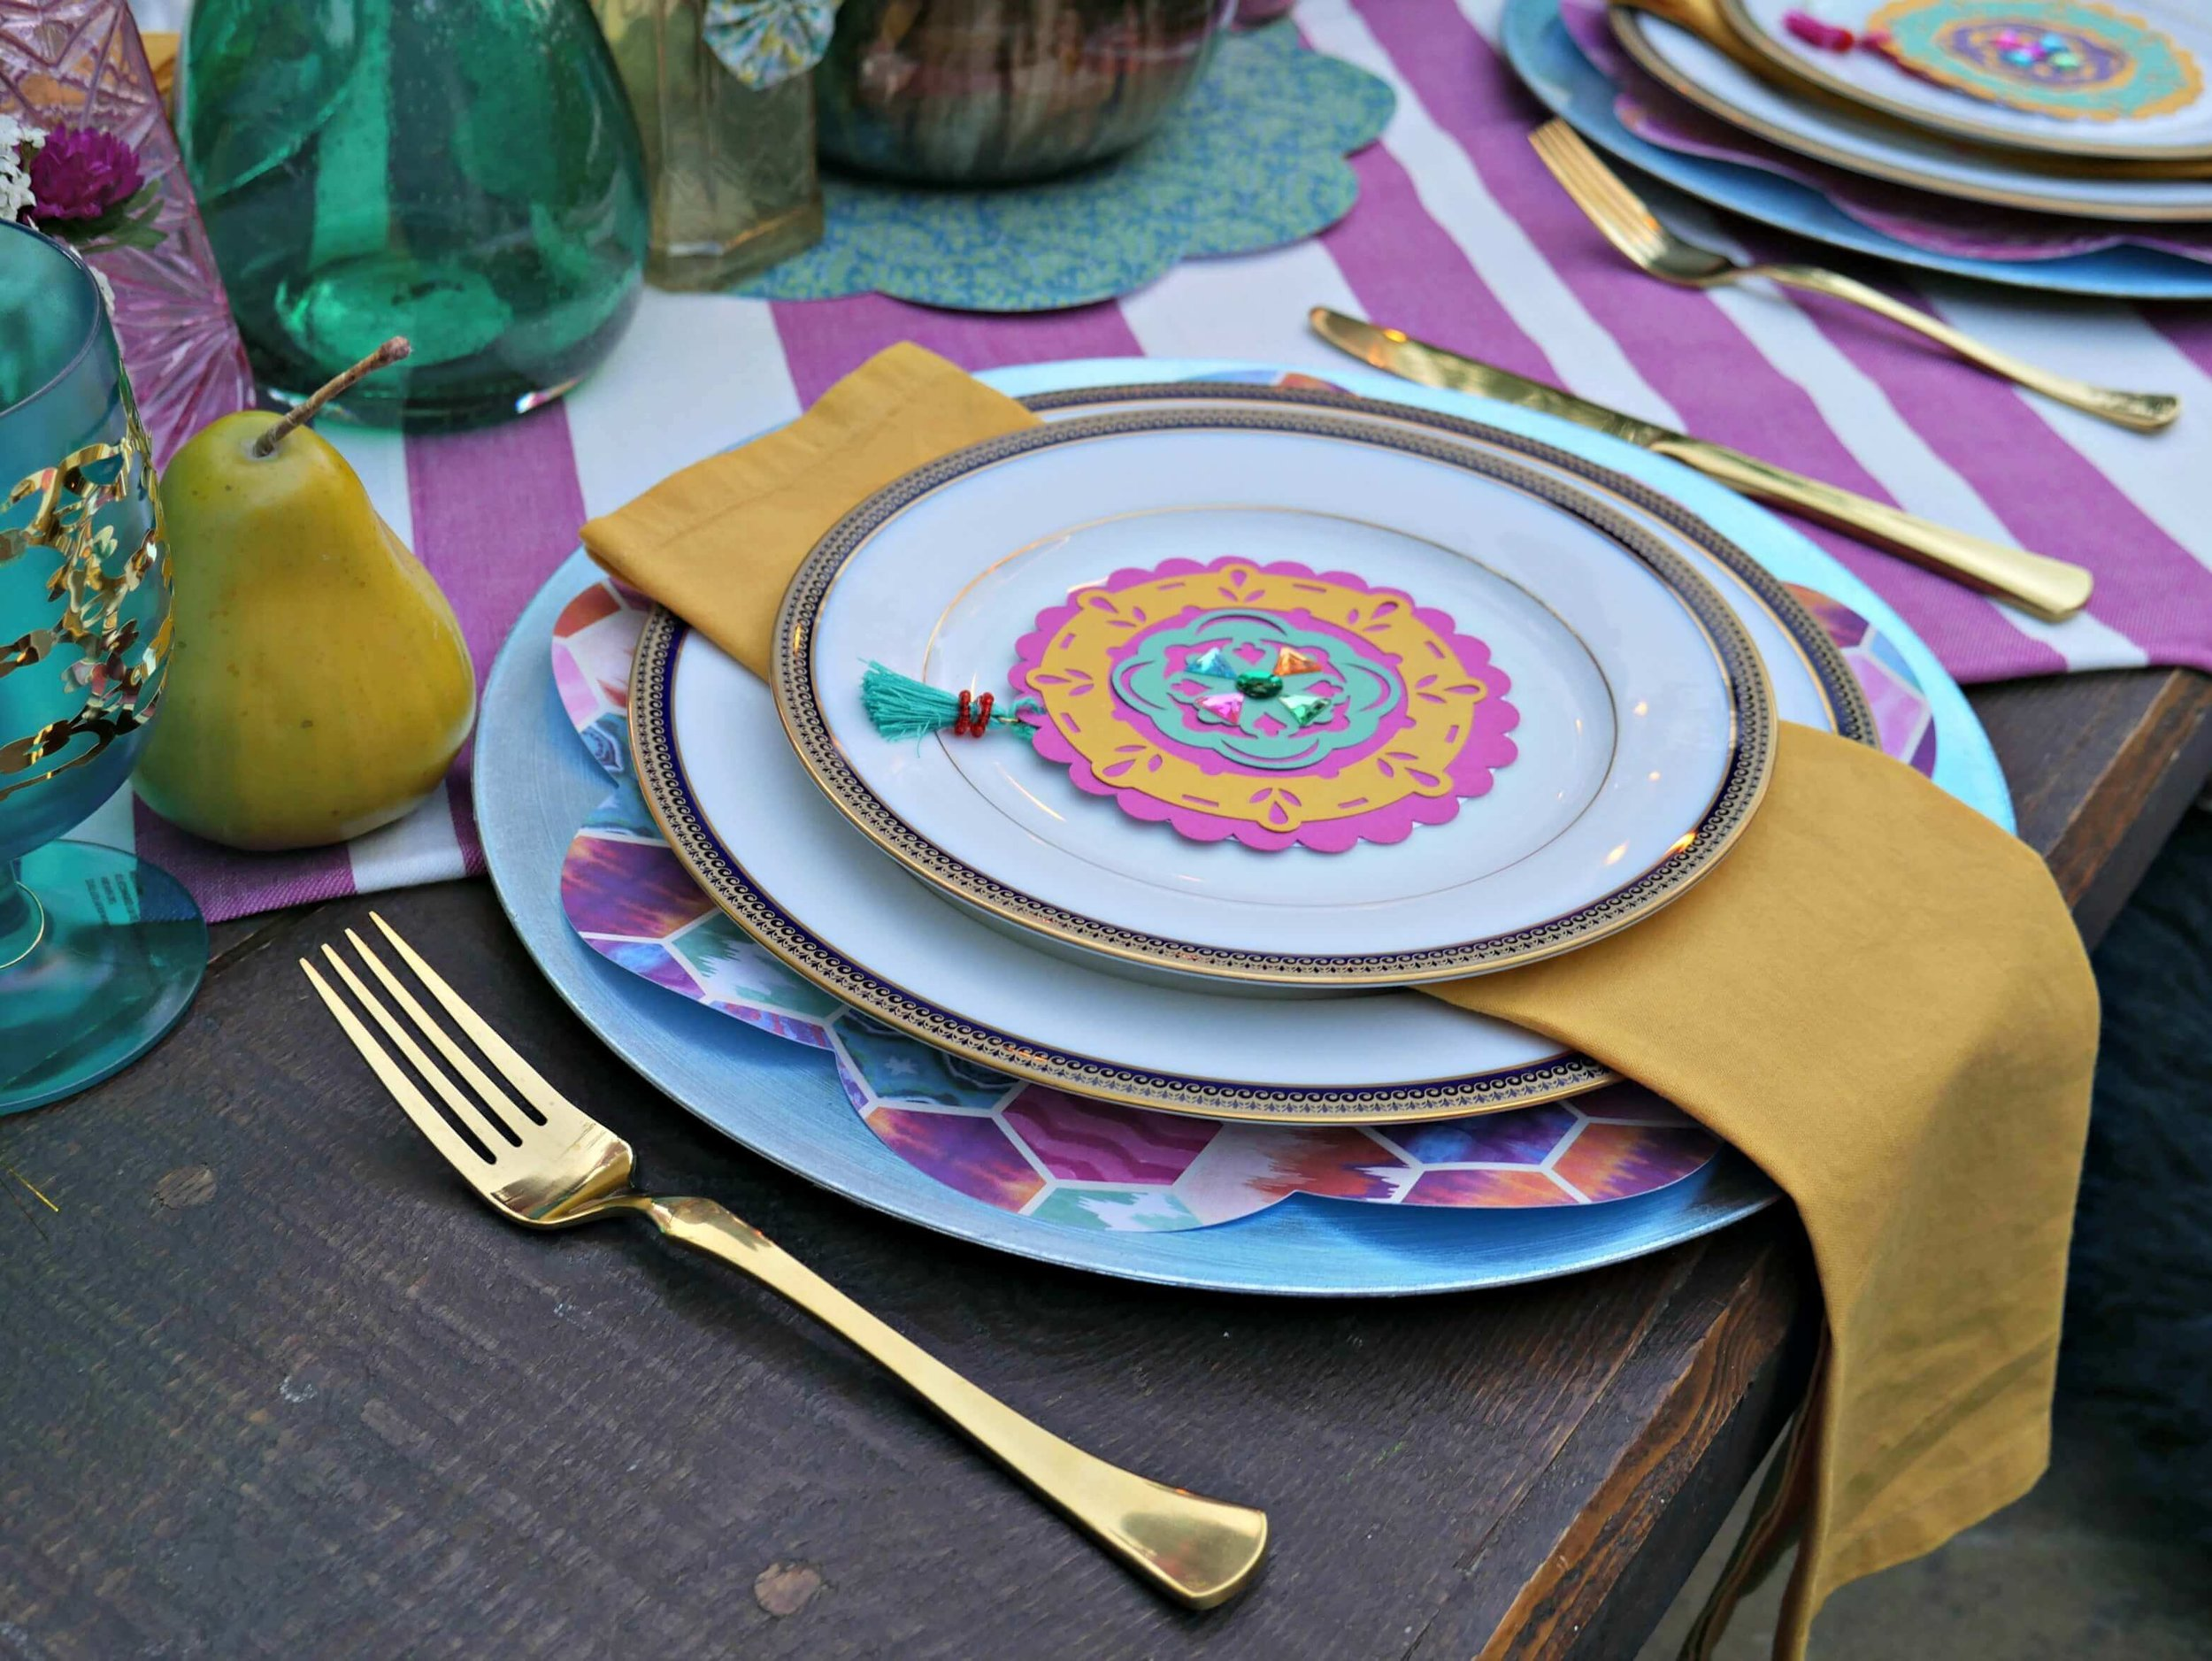 Gold utensils, colorful chargers, patterned paper and fancy plates set the tone at this boho chic engagement party. Styled by Mint Event Design www.minteventdesign.com #tablesetting #tablescapes #bohochic